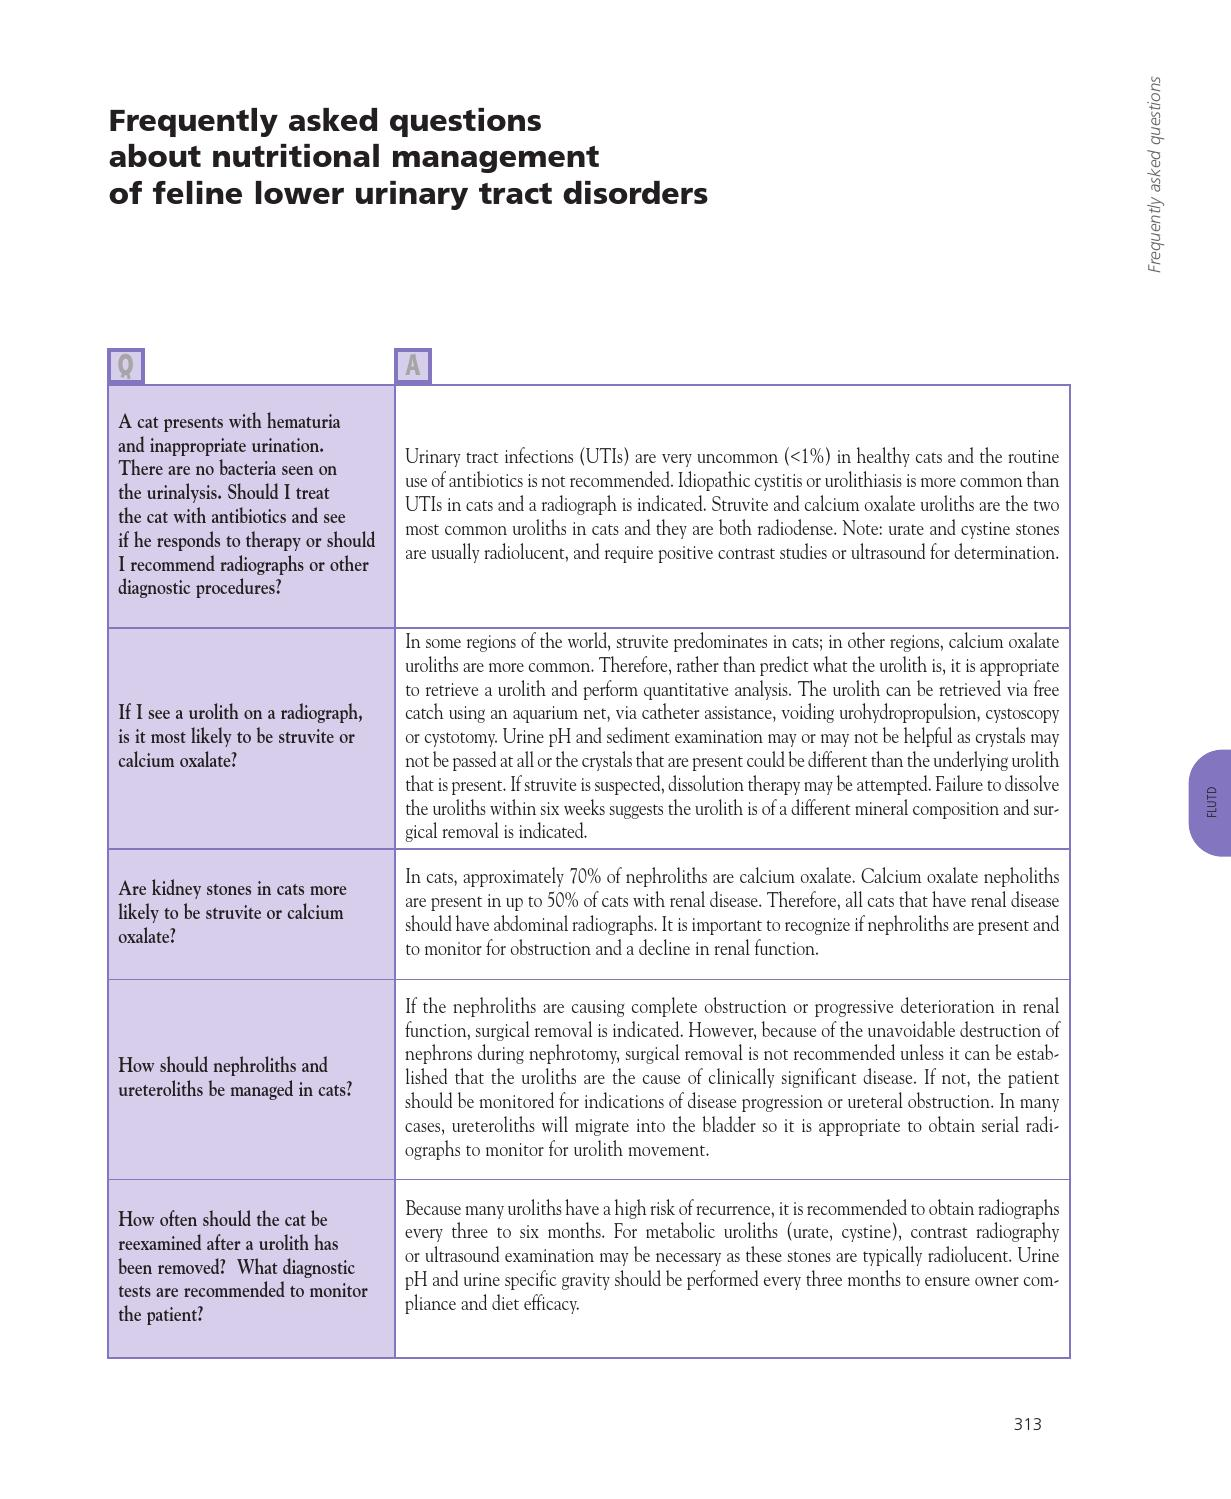 Encyclopedia of feline clinical nutrition 2 by CoreCPH - issuu